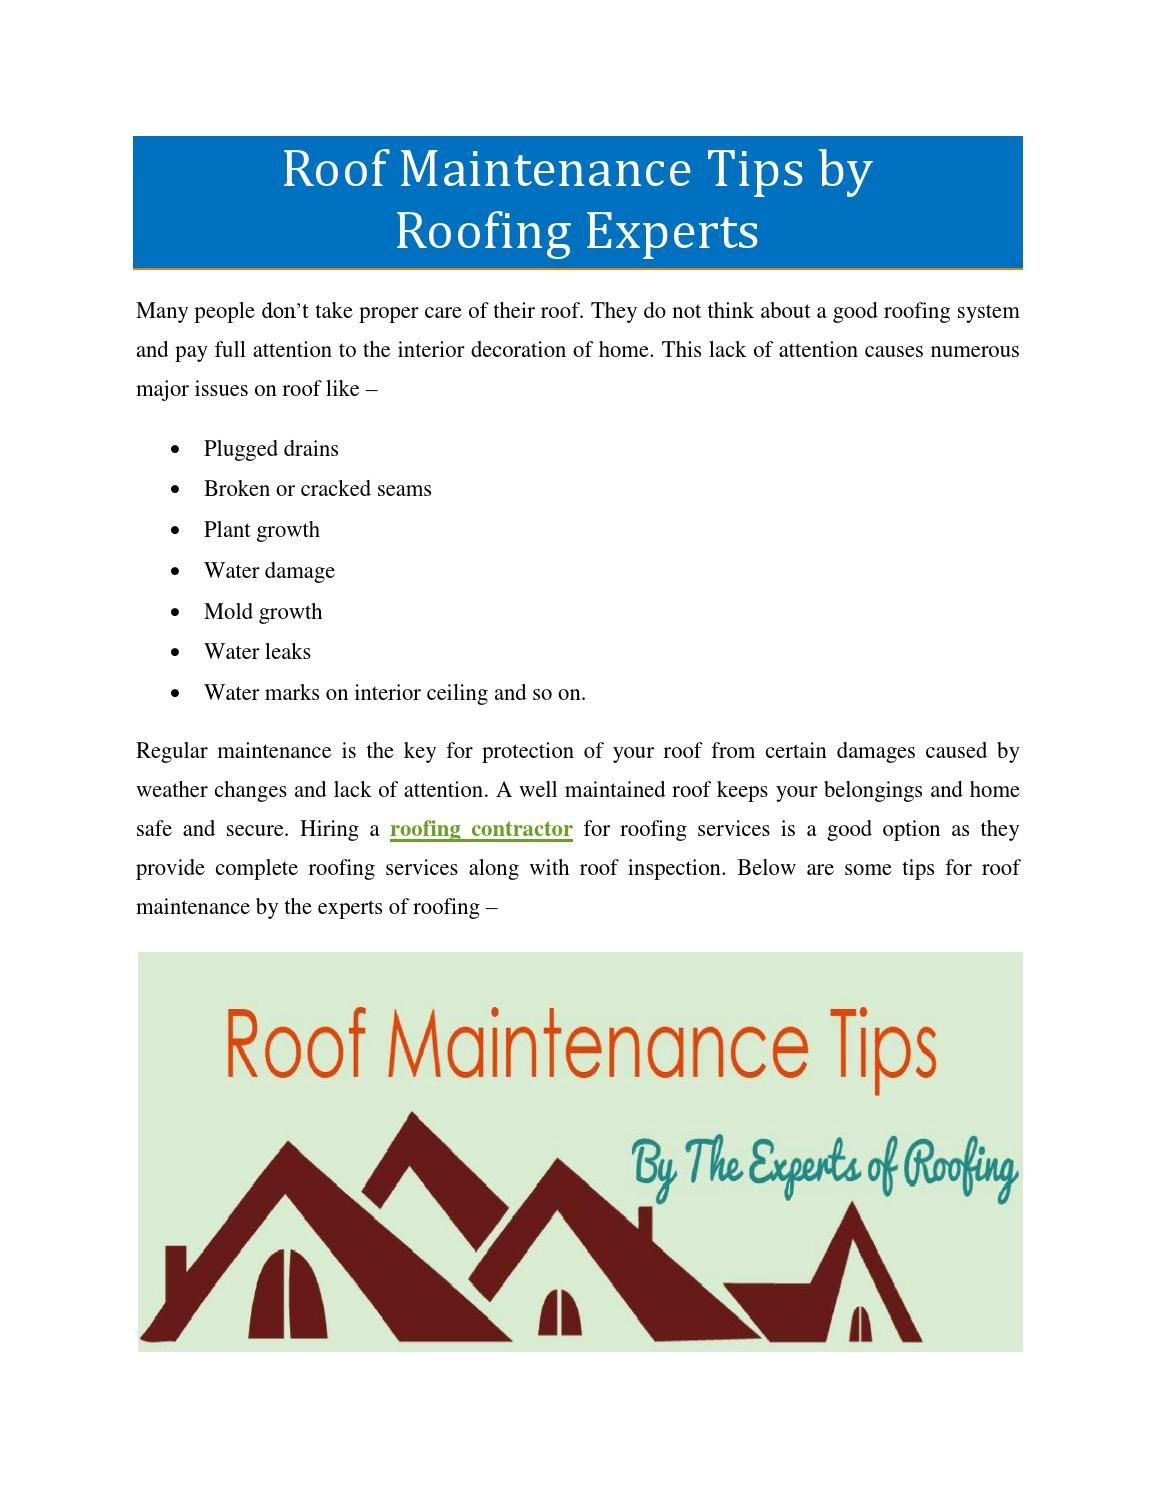 Roof Maintenance Tips By Roofing Experts Roof Maintenance Roofing Cool Roof